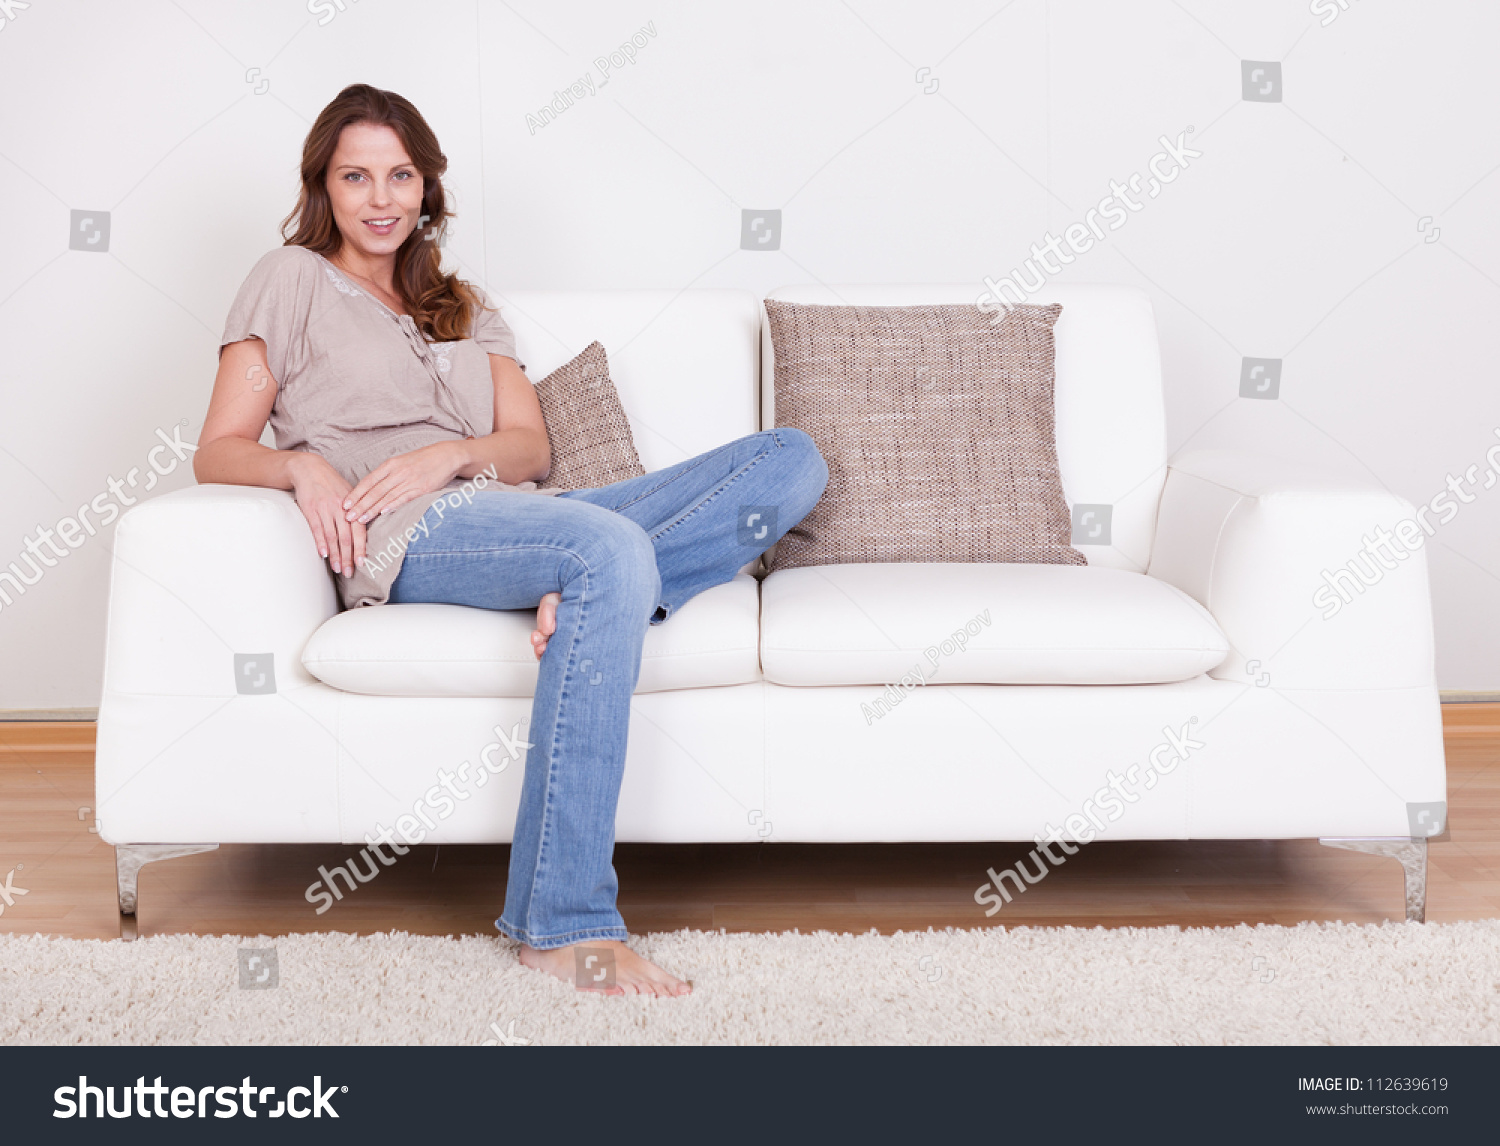 Casual Barefoot Woman In Jeans Sitting On A Couch In Her